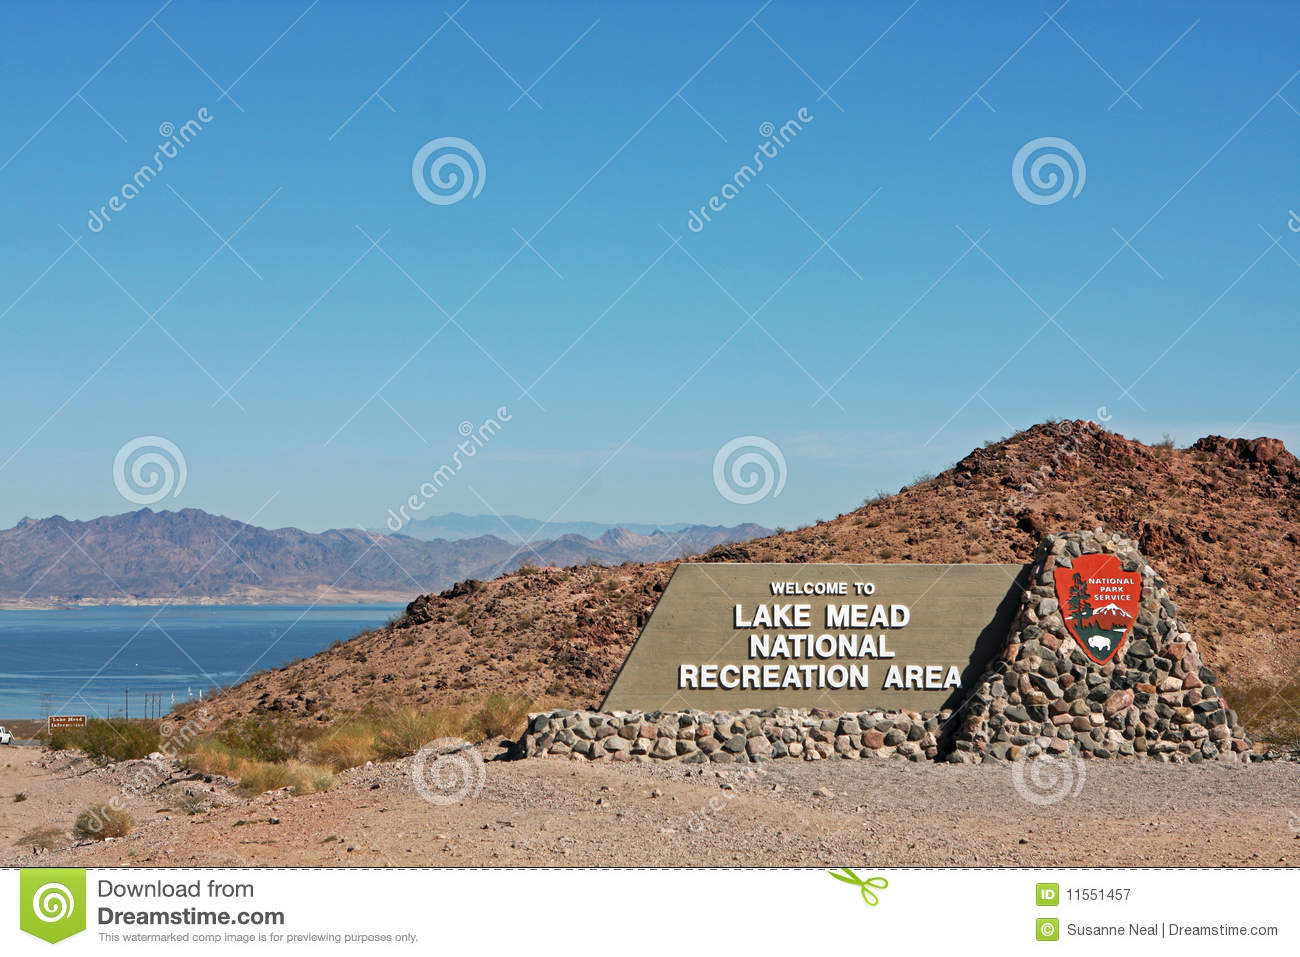 ... Recreation Area Royalty Free Stock Photography - Image: 11551457